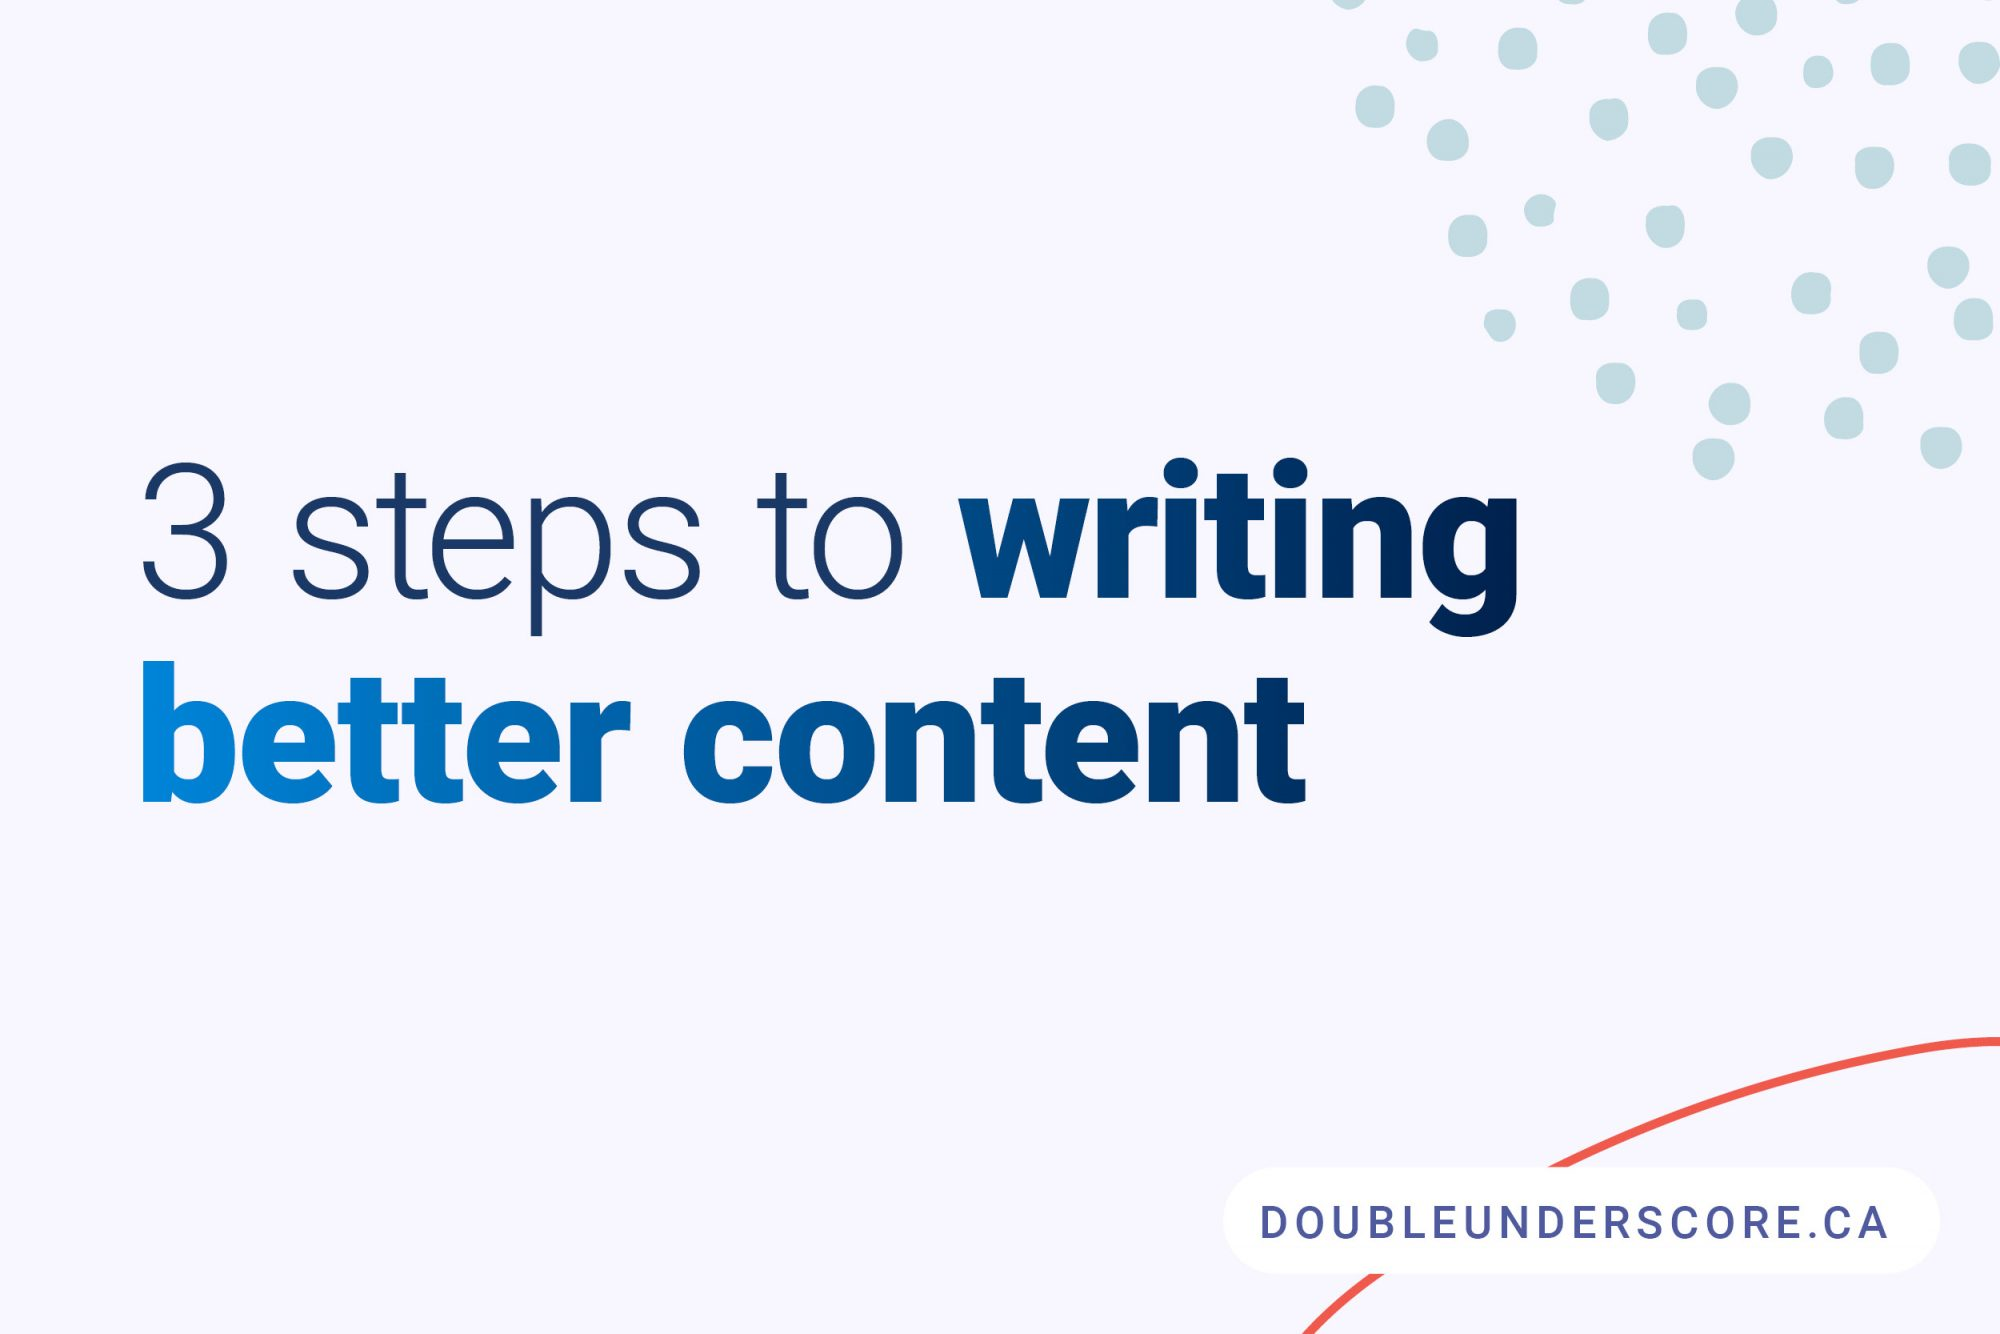 how to write content faster by DoubleUnderscore